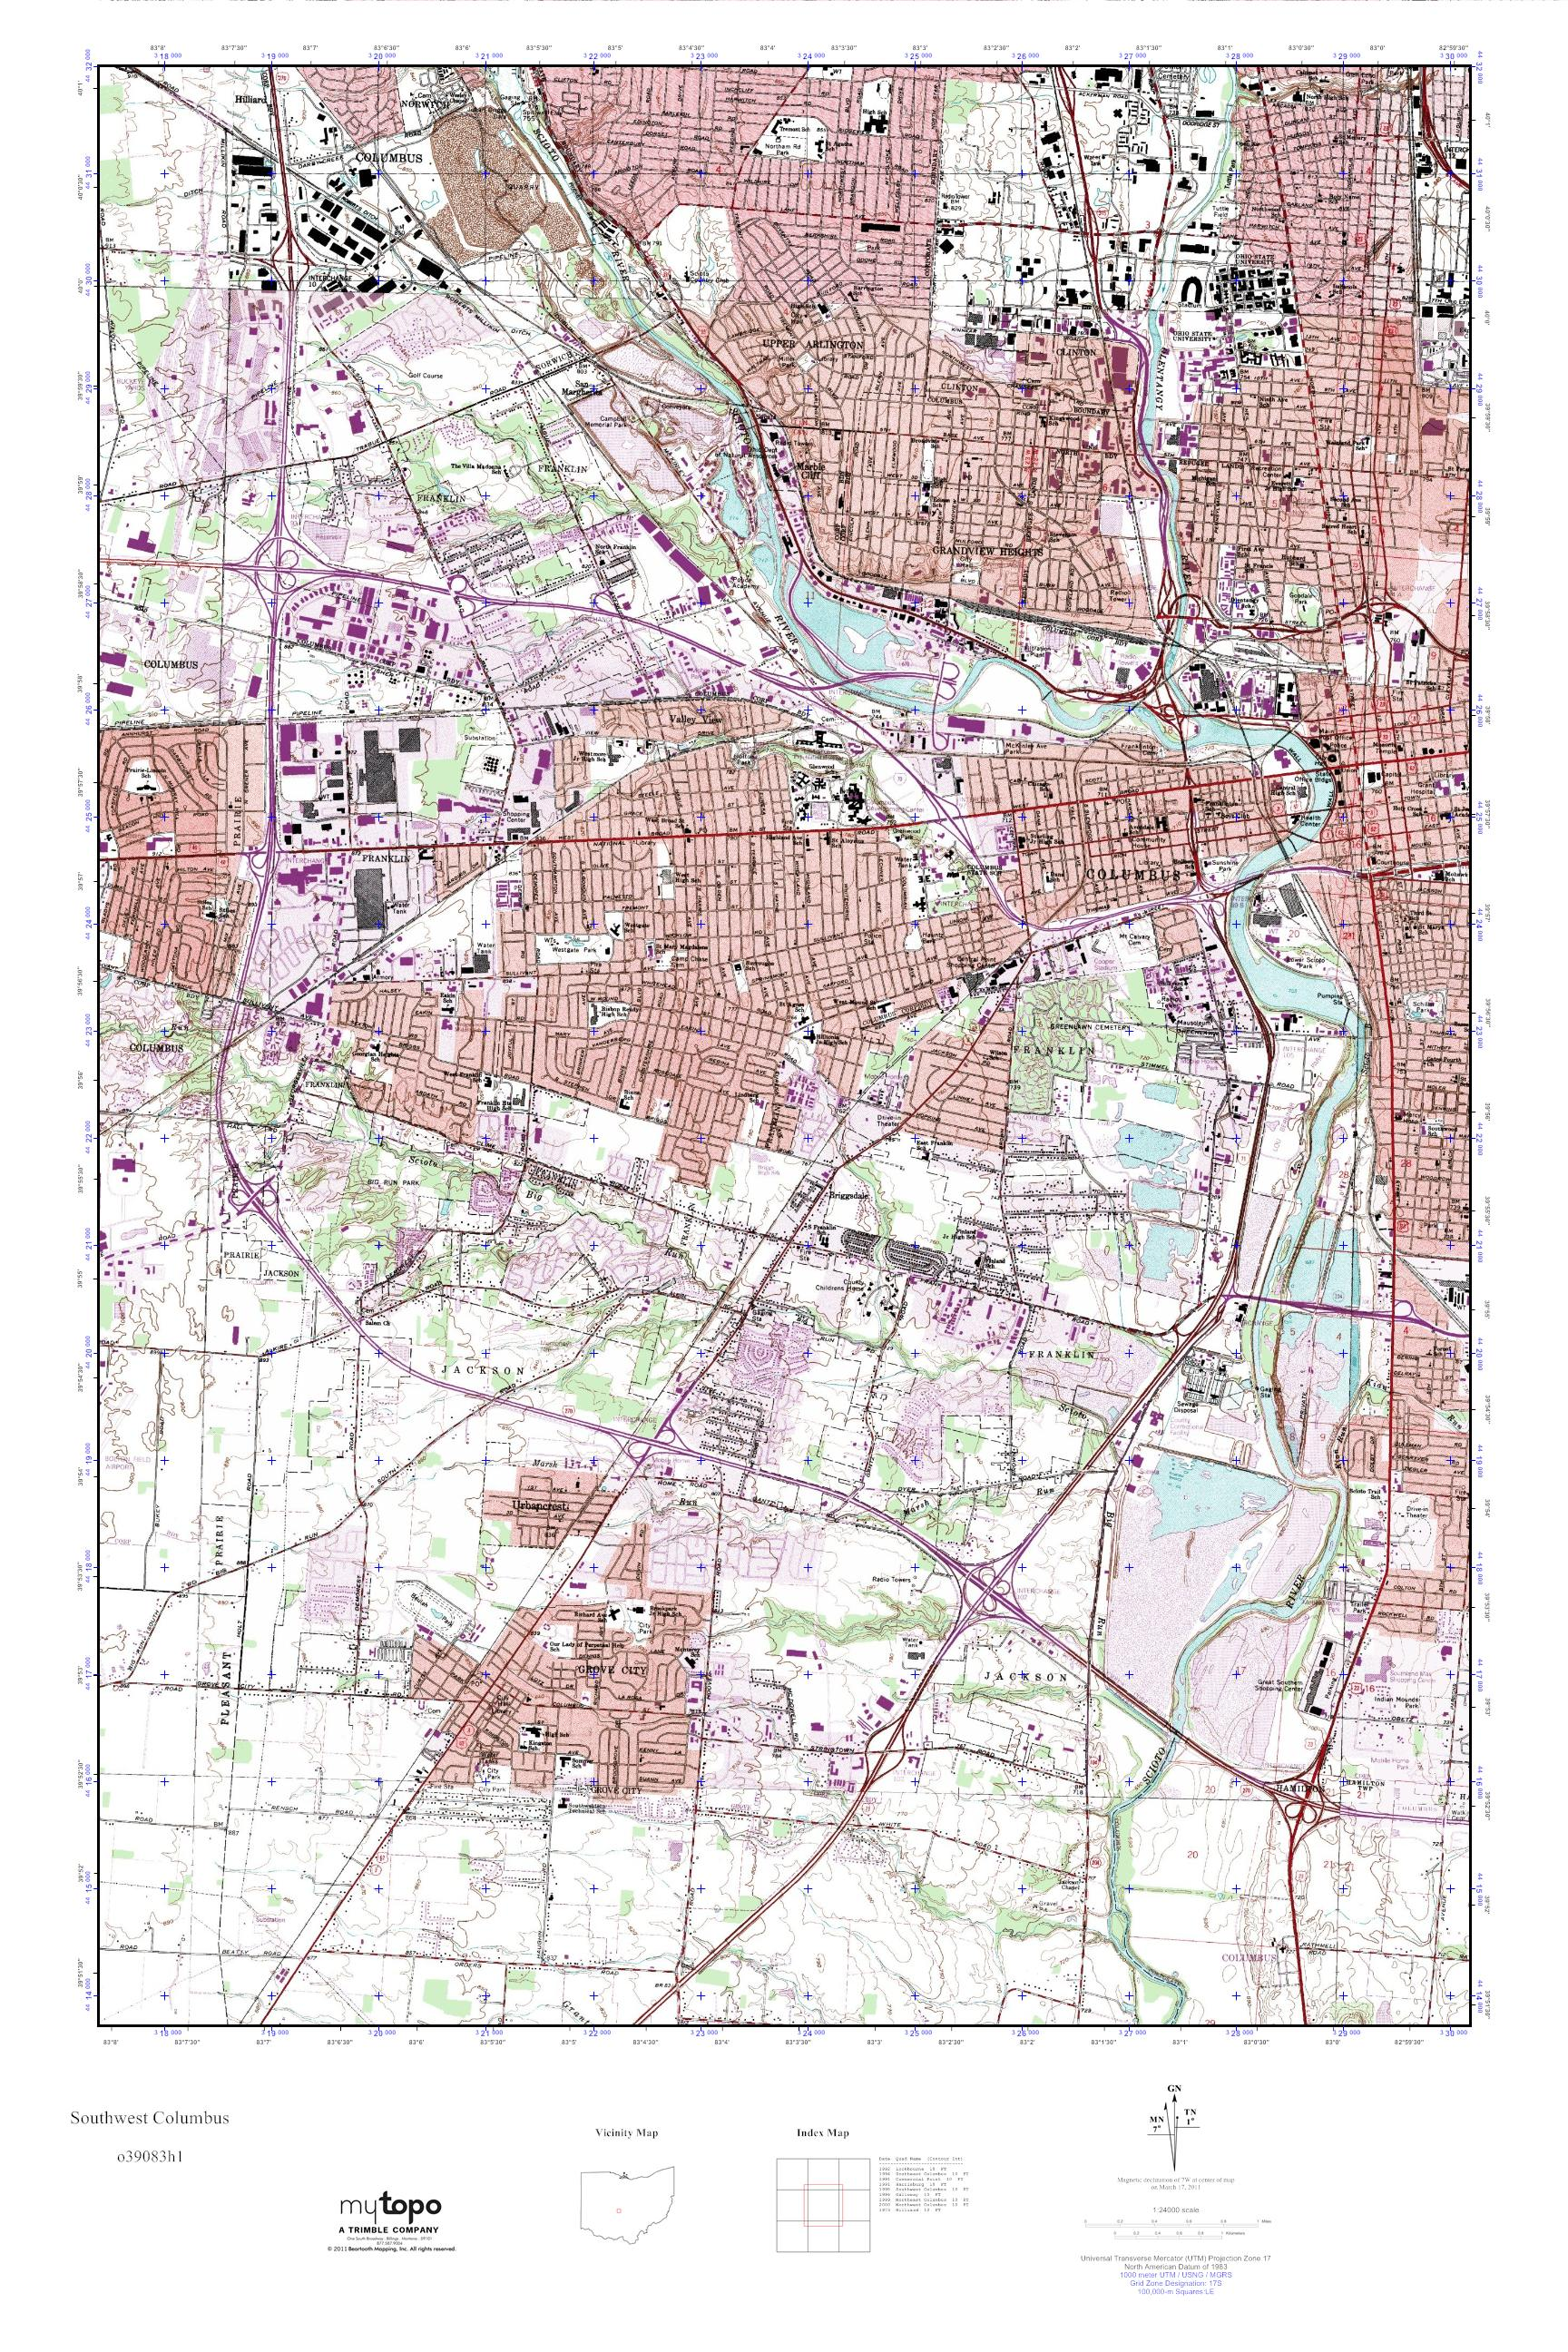 Southwestern Ohio Map.Mytopo Southwest Columbus Ohio Usgs Quad Topo Map